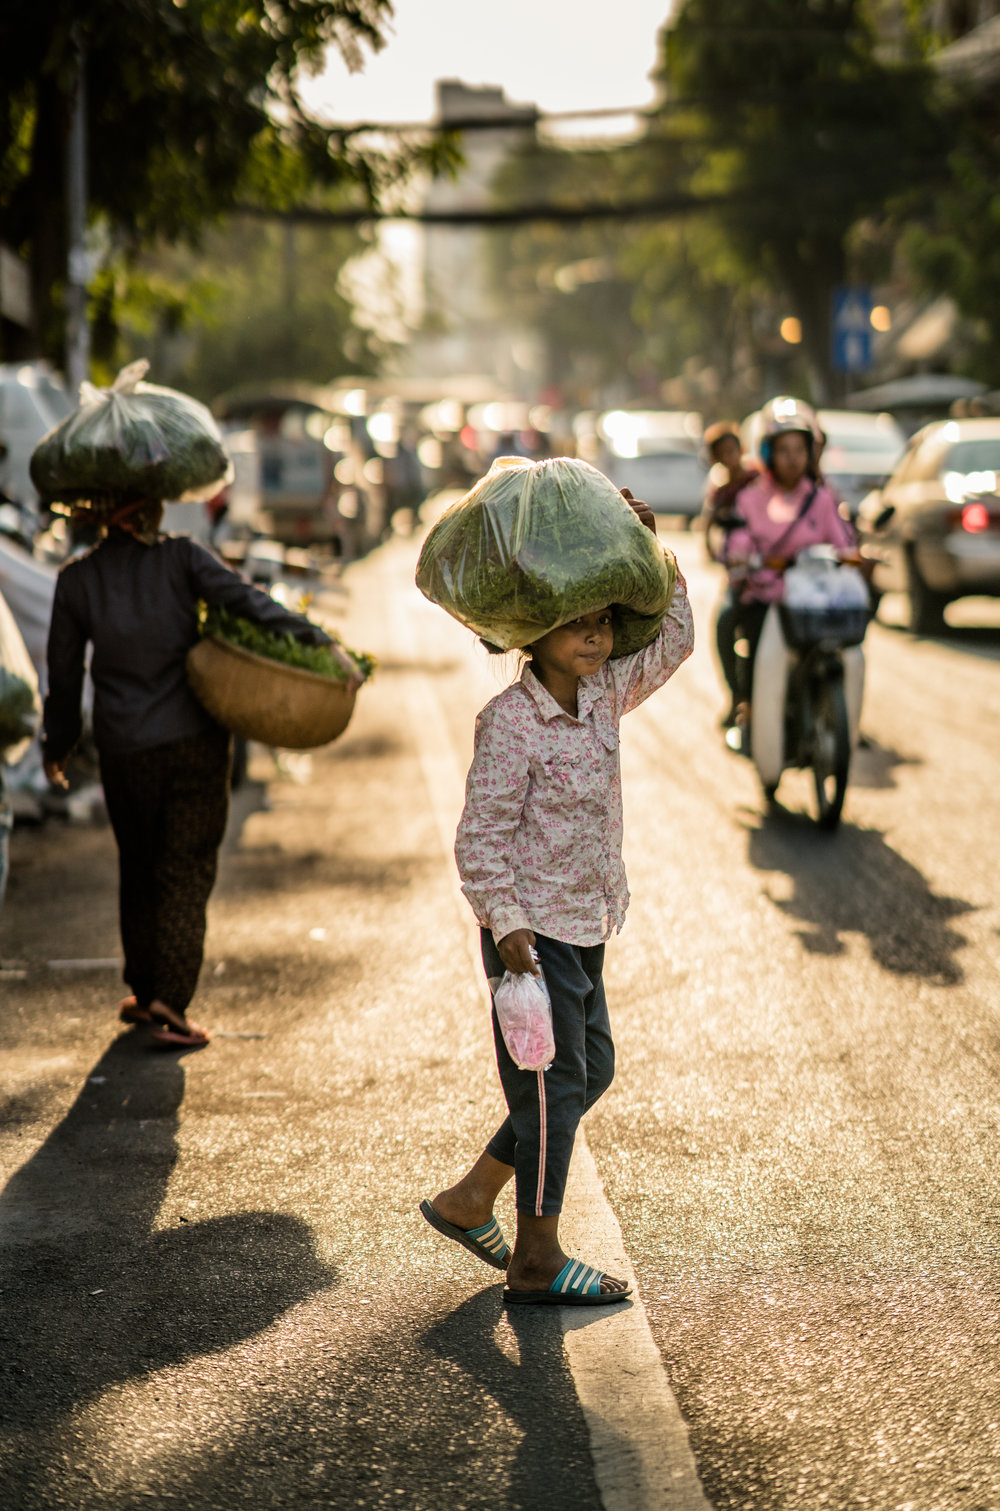 A young girl crosses the street in Phnom Penh, Cambodia.